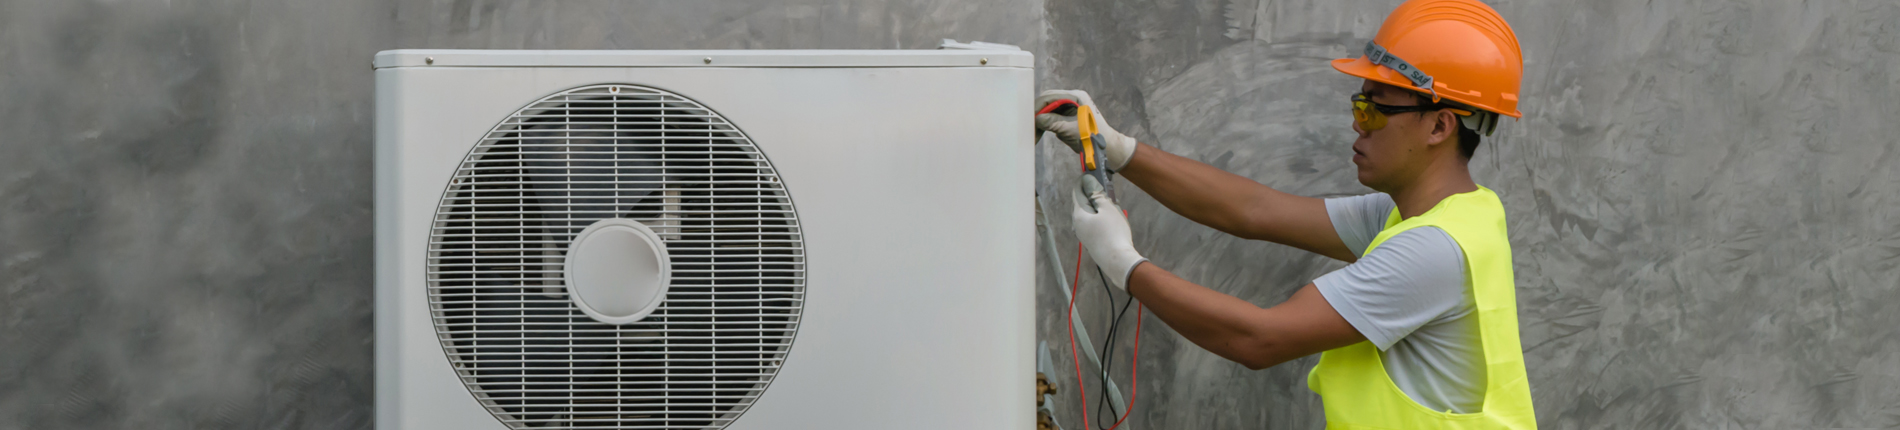 HVAC student working on an air conditioner unit.